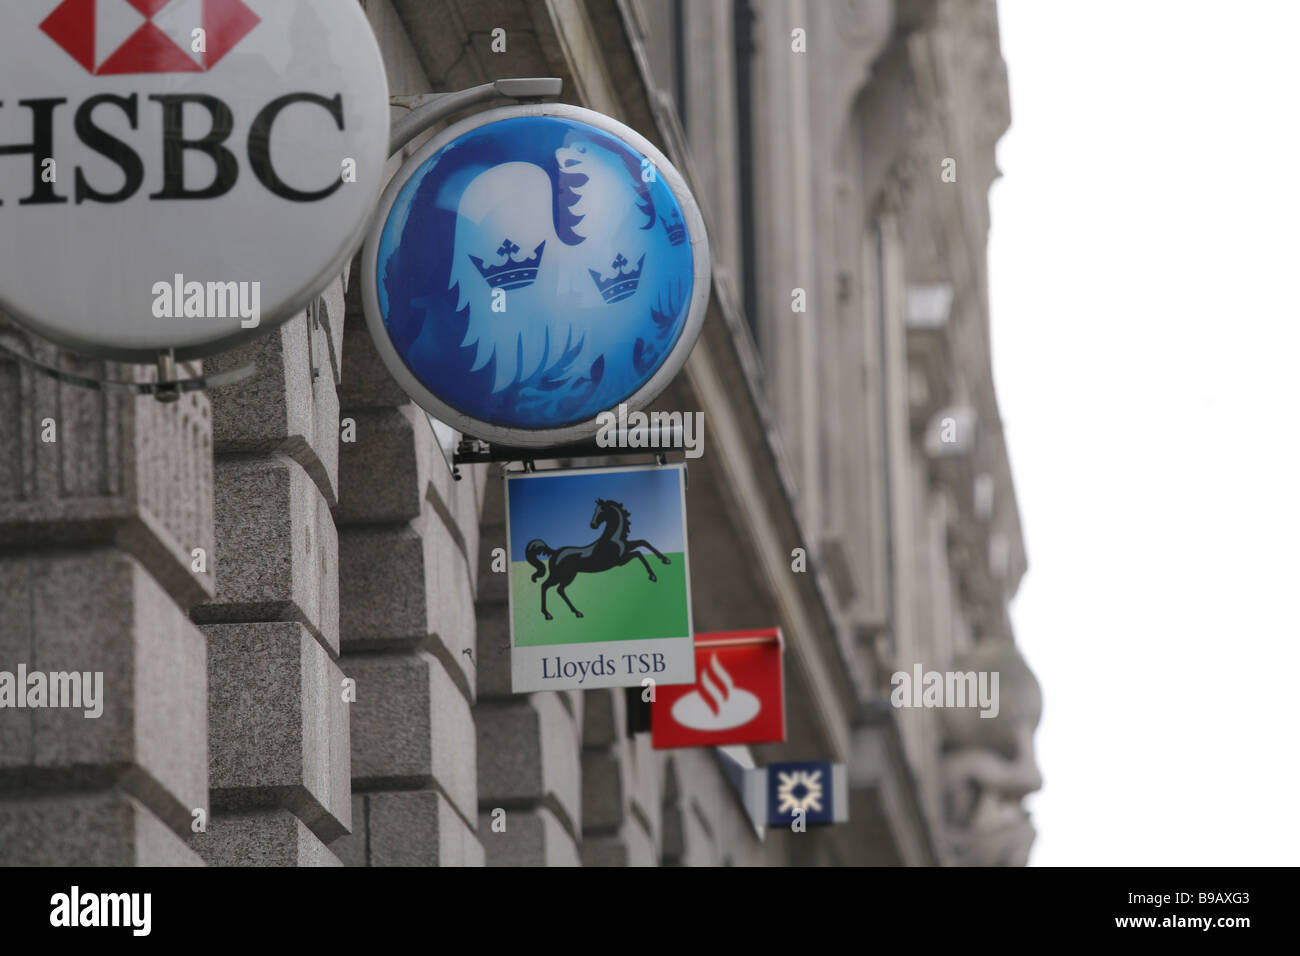 Bank signs, City of London - Stock Image